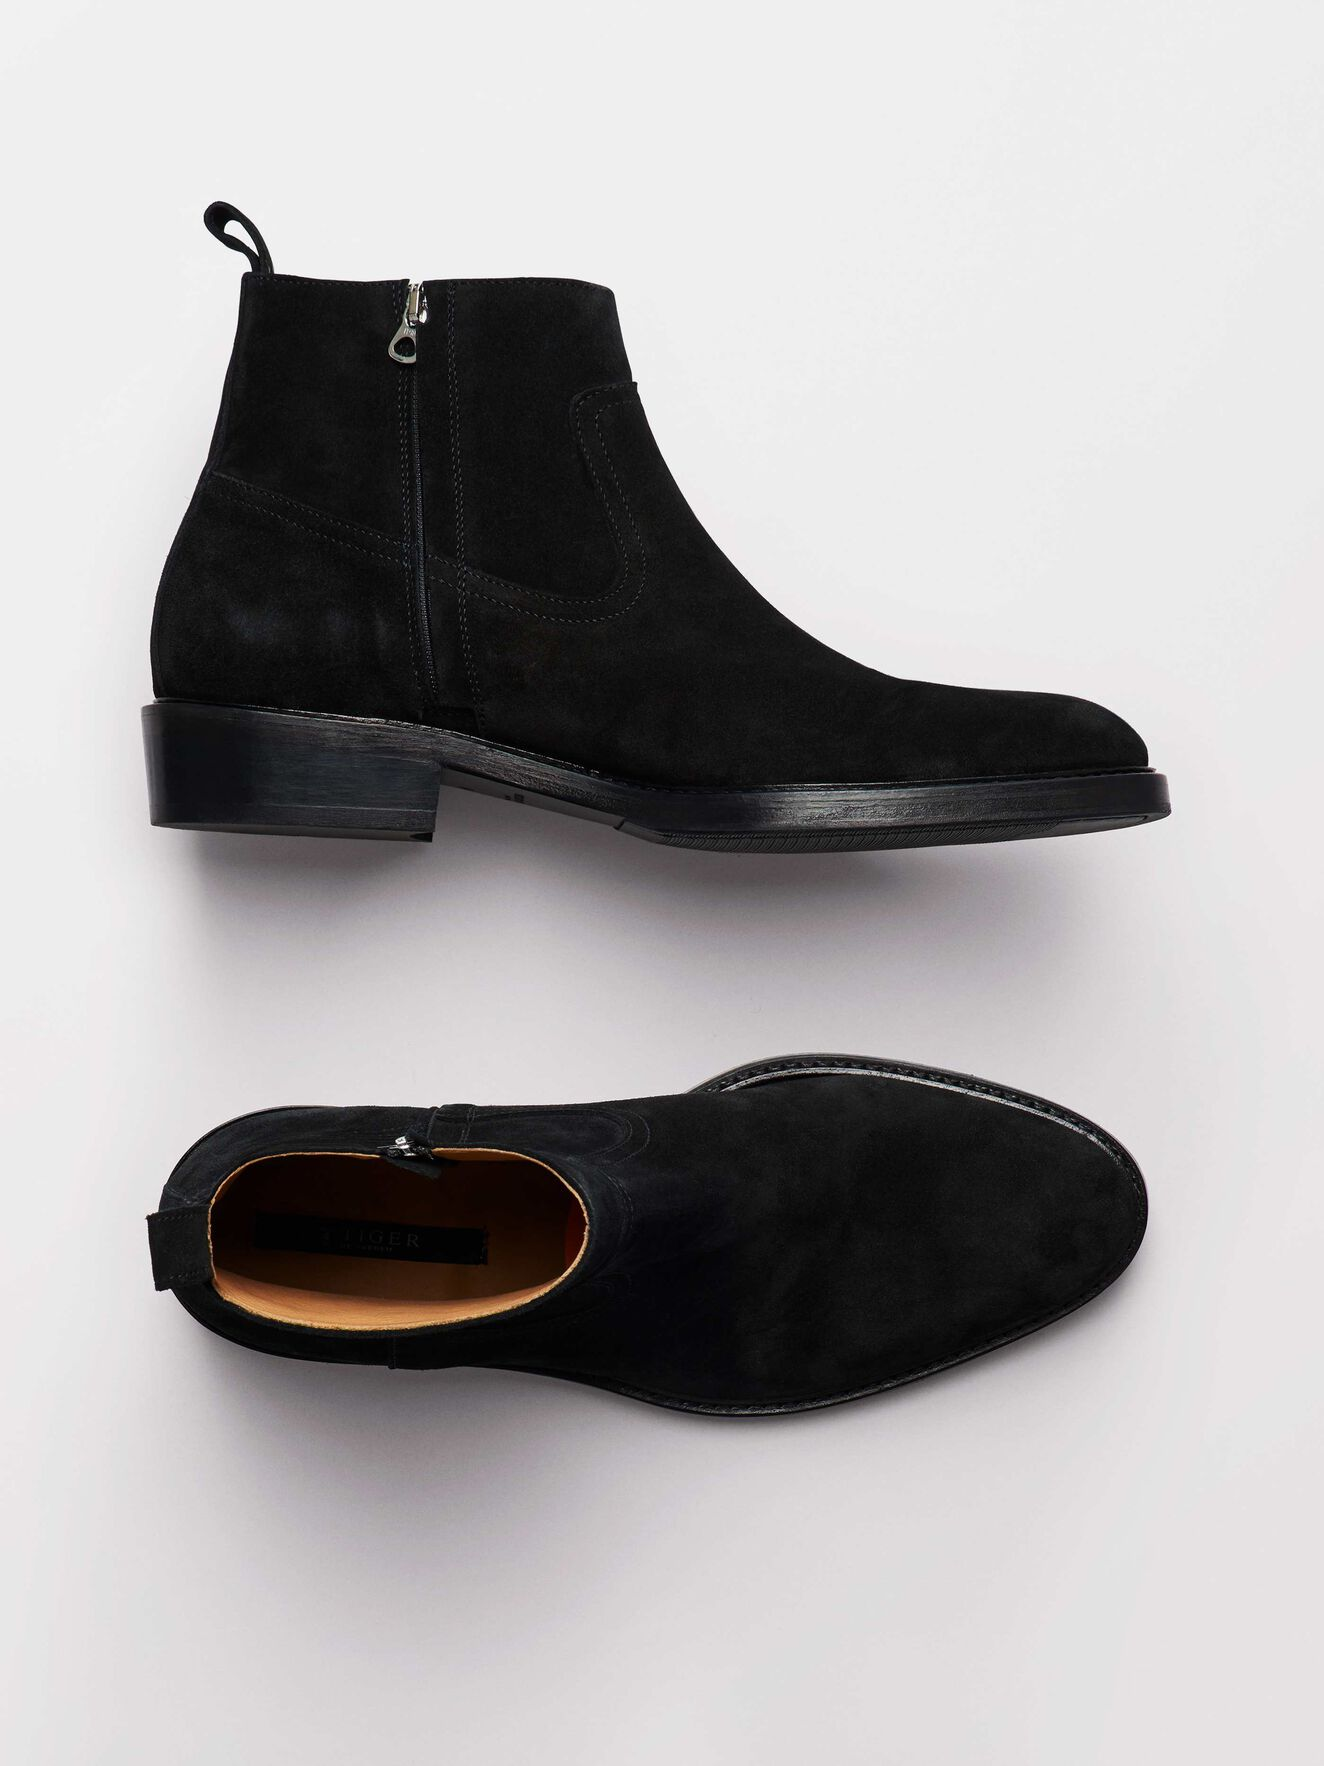 Barant S Boots in Black from Tiger of Sweden